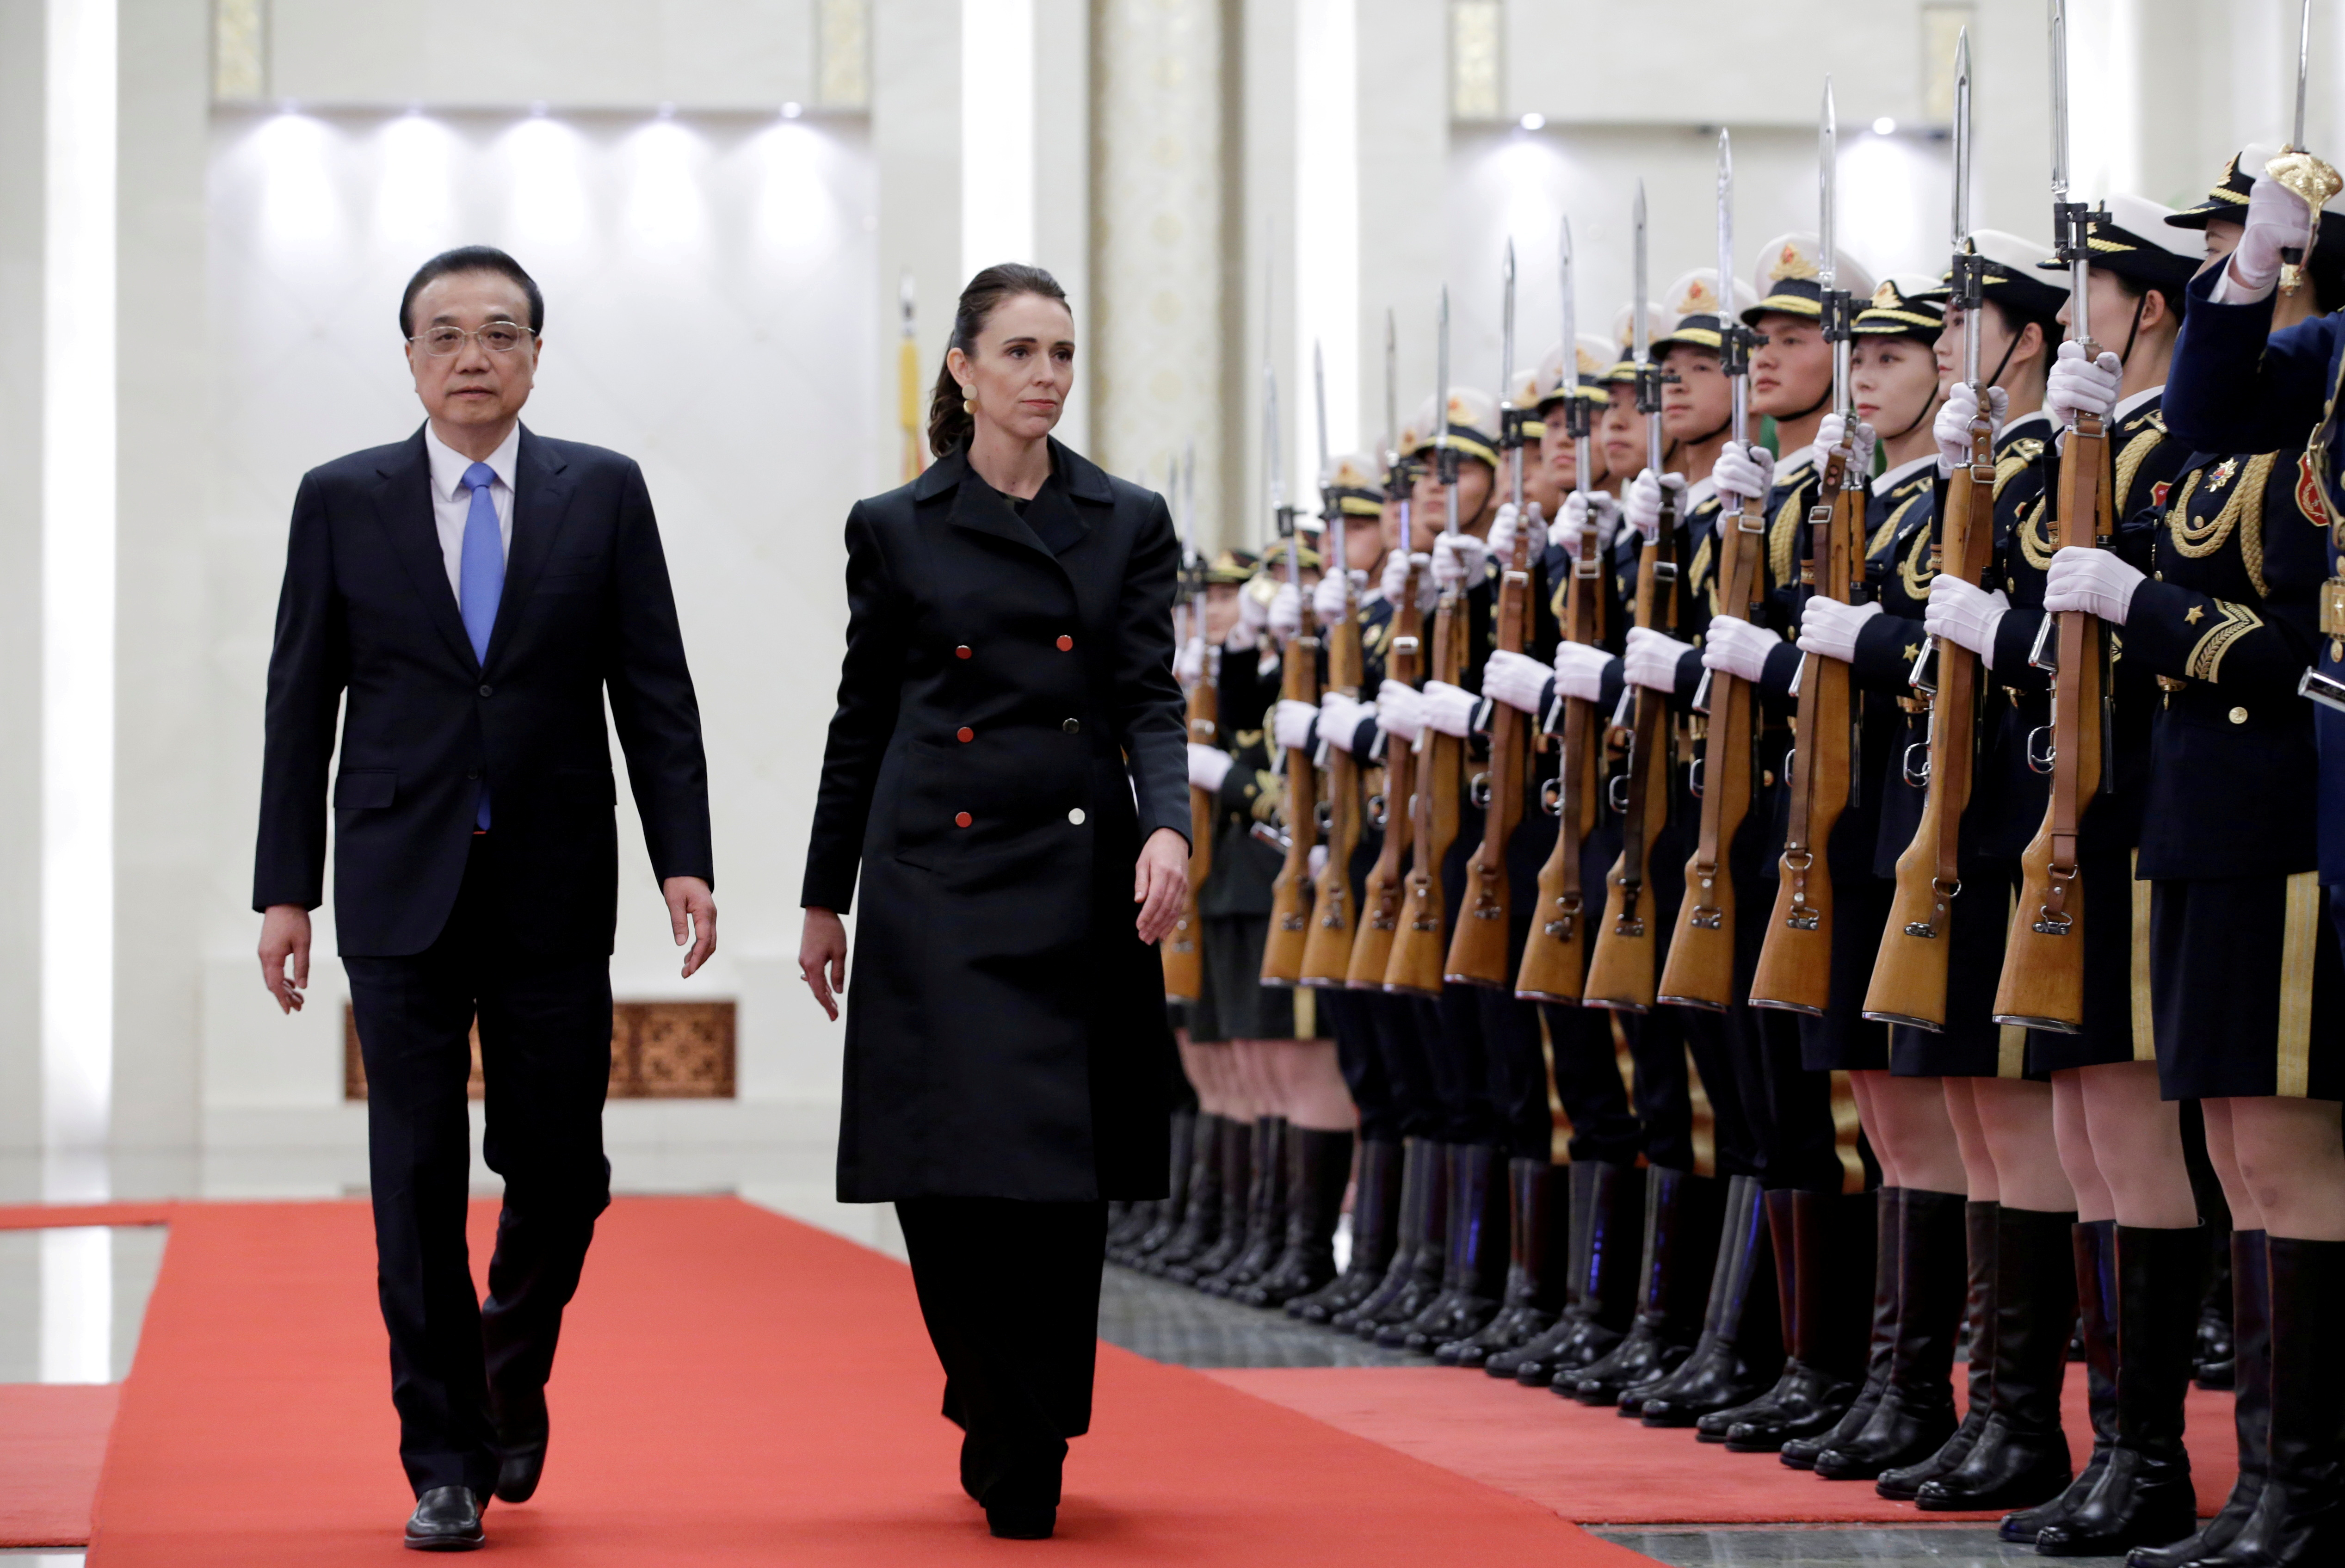 New Zealand Prime Minister Jacinda Ardern (R) and China's Premier Li Keqiang attend a welcome ceremony at the Great Hall of the People in Beijing, China, April 1, 2019. REUTERS/Jason Lee/